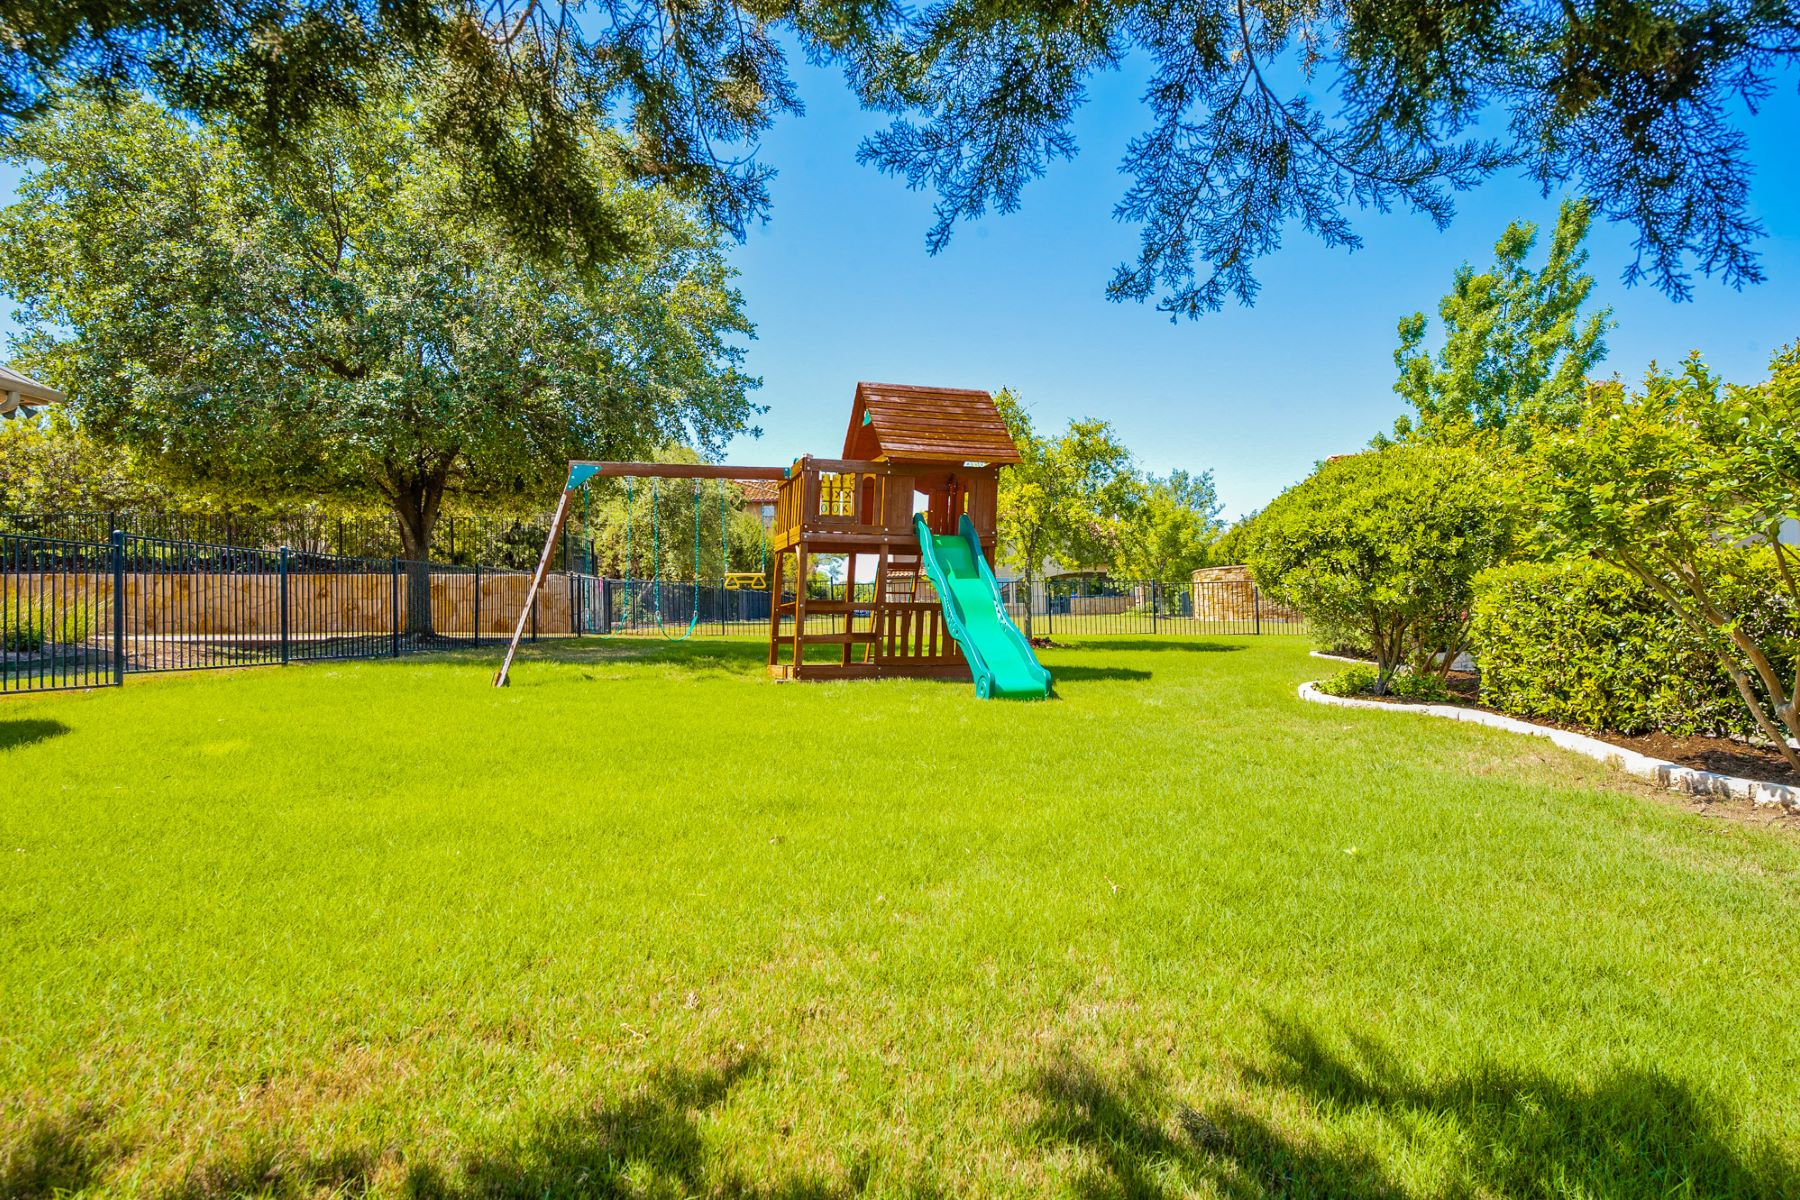 Additional photo for property listing at 106 Cabo Del Sol Ct, Lakeway  Lakeway, Texas 78738 United States